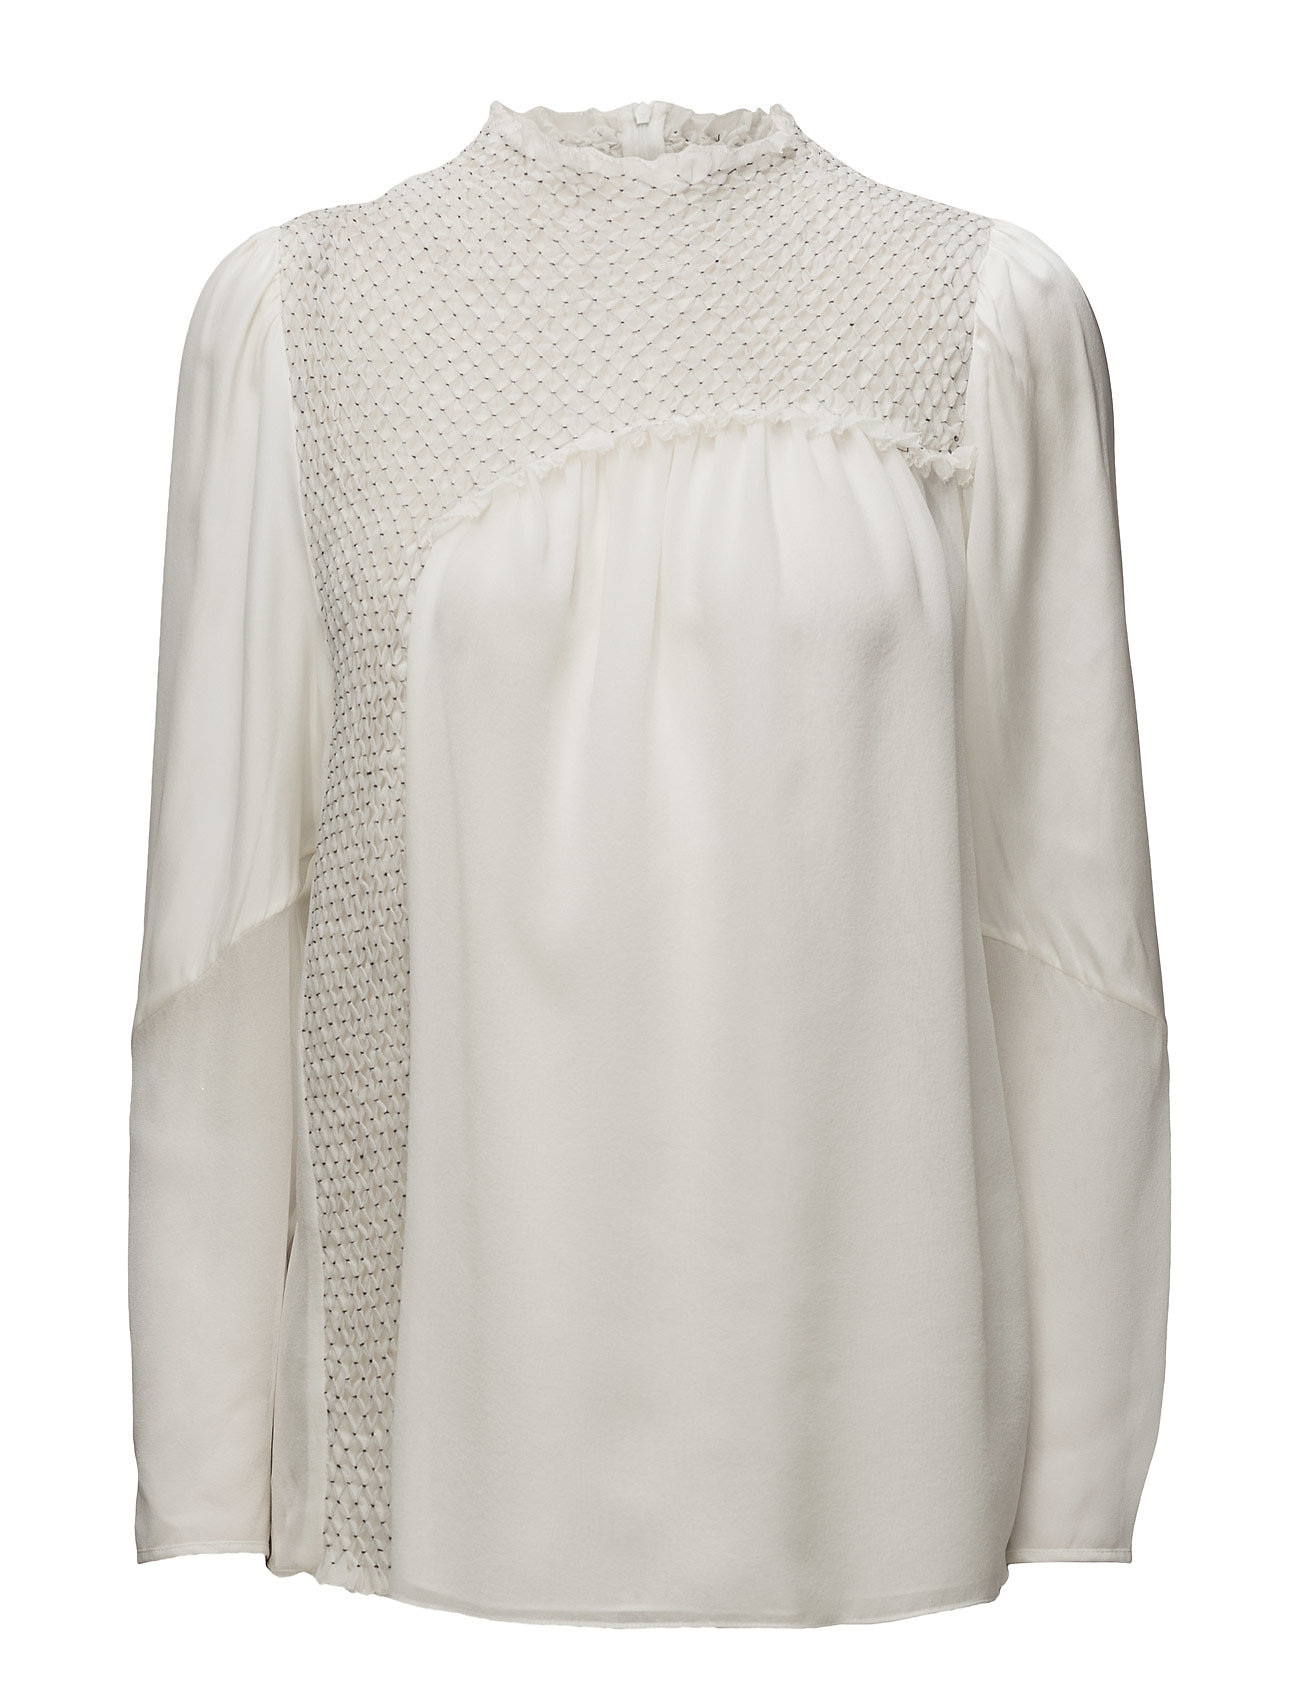 Ls top with diamond smocking fra 3.1 phillip lim på boozt.com dk